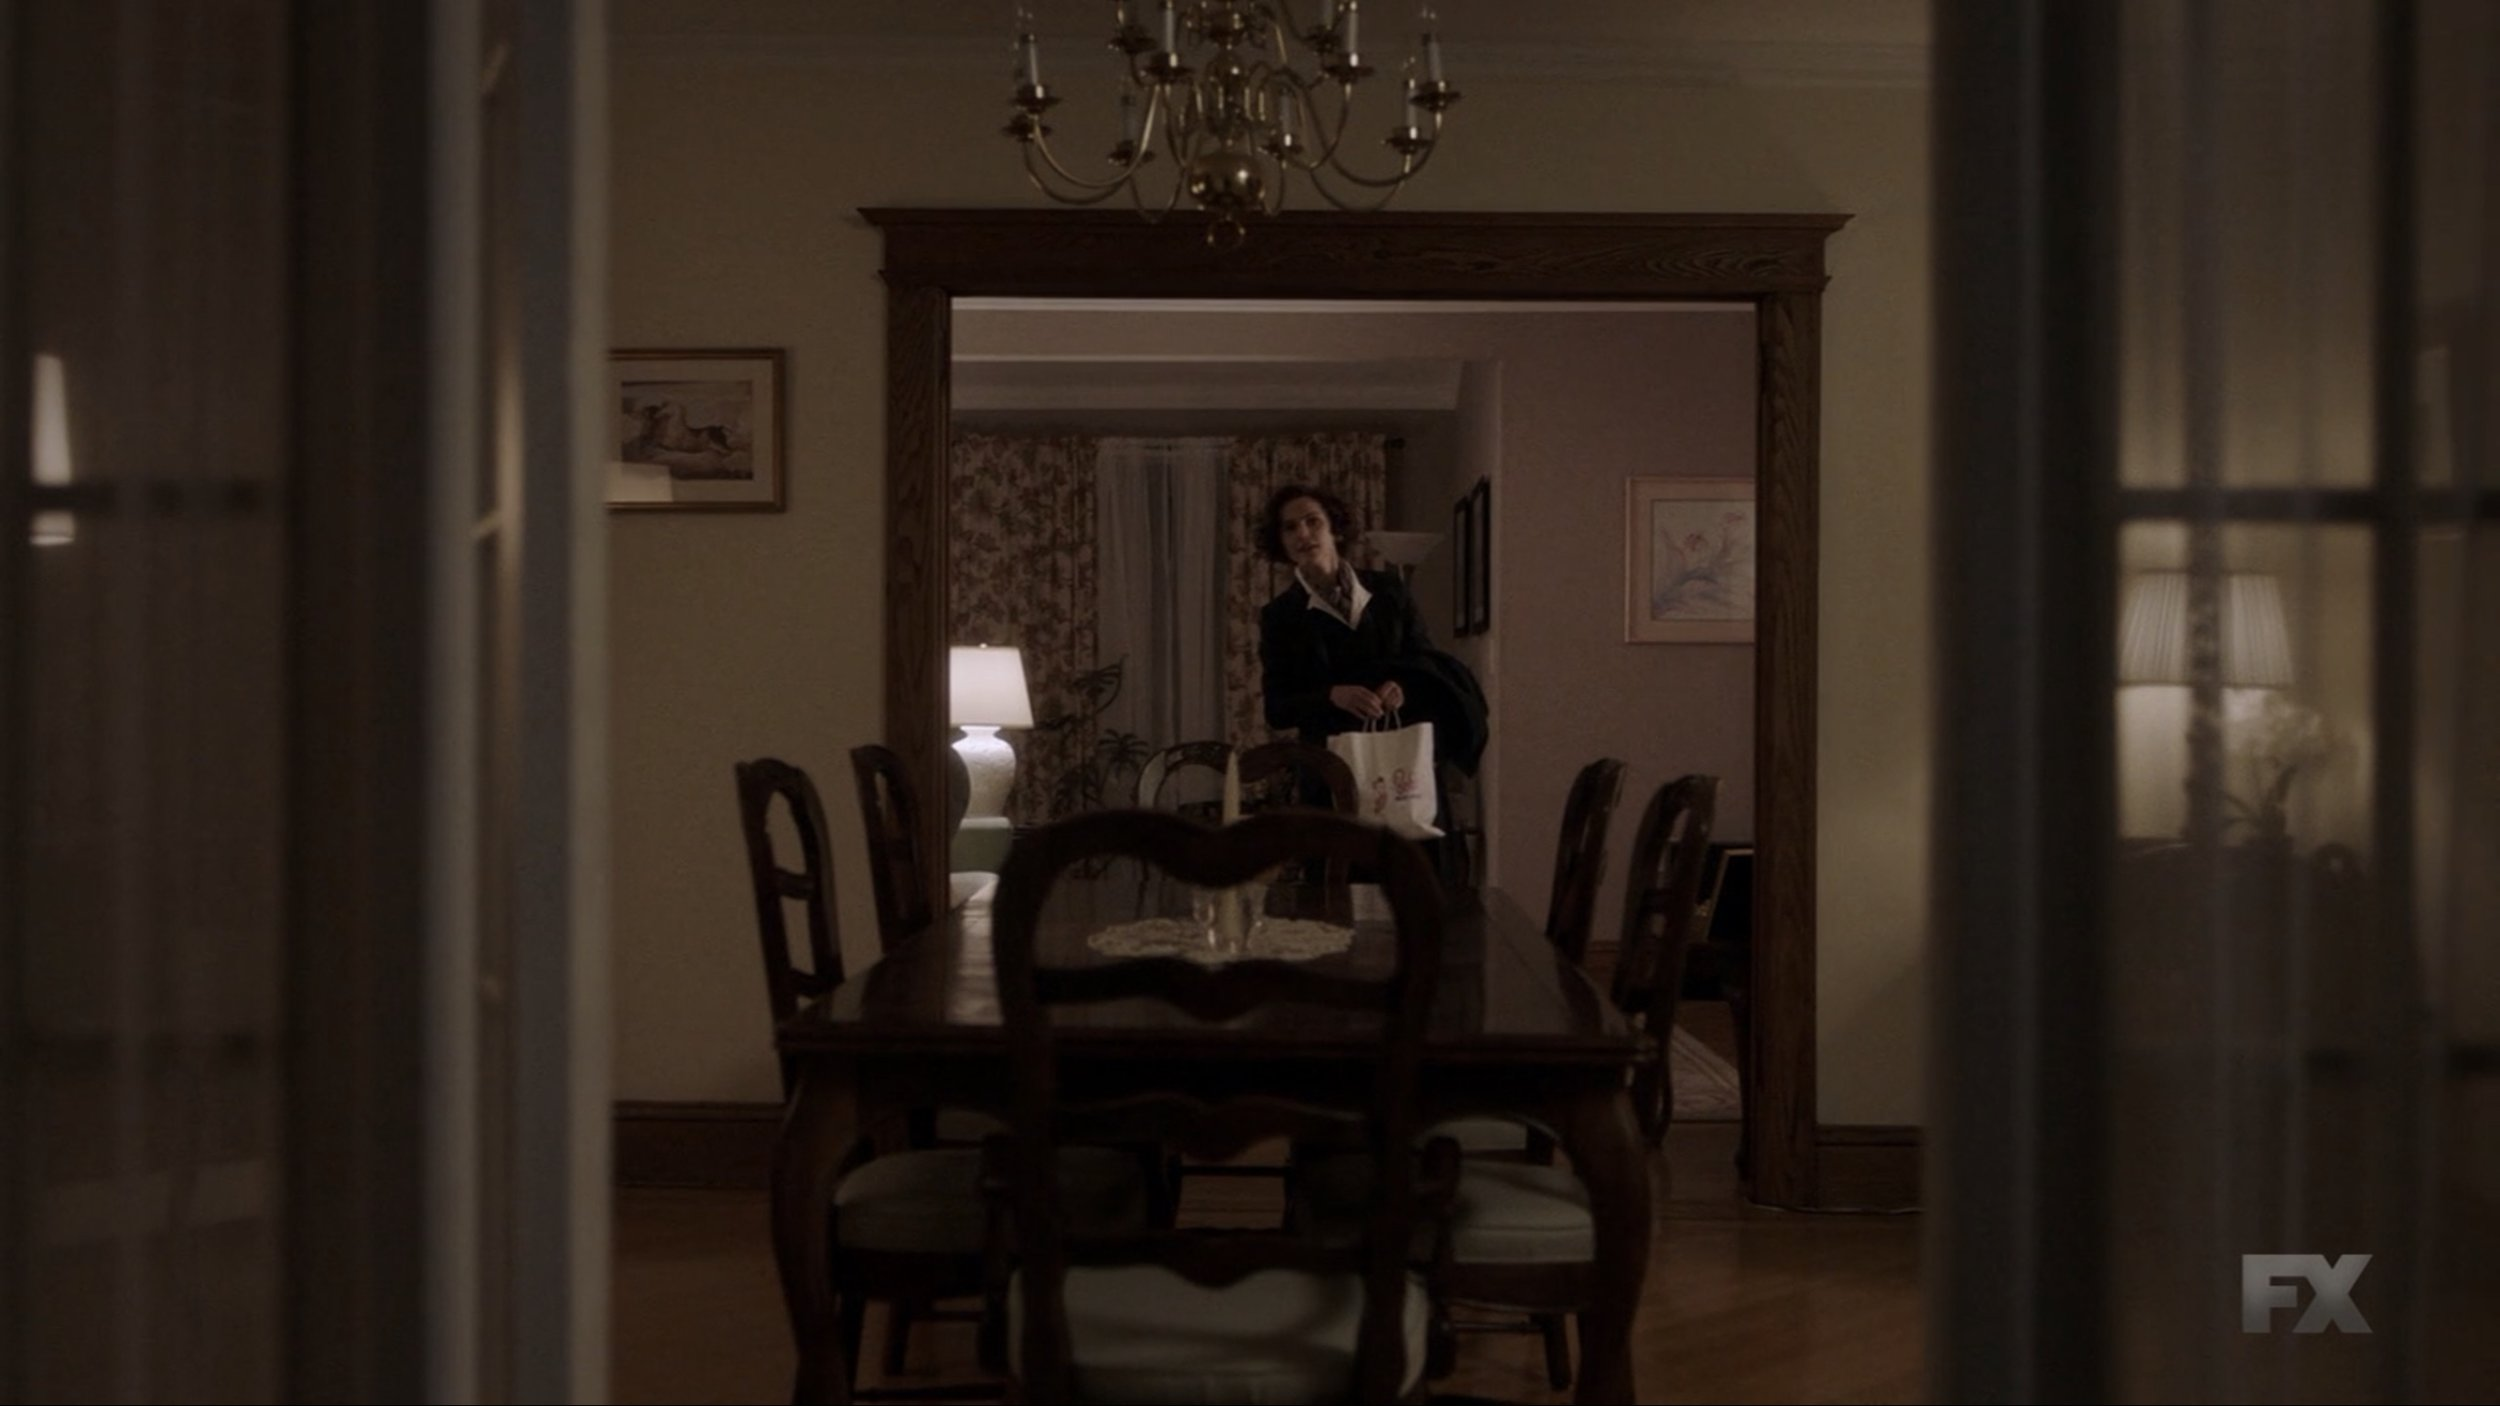 I could have posted half a dozen shots from this great scene that conveyed just how empty the house felt when Elizabeth arrived